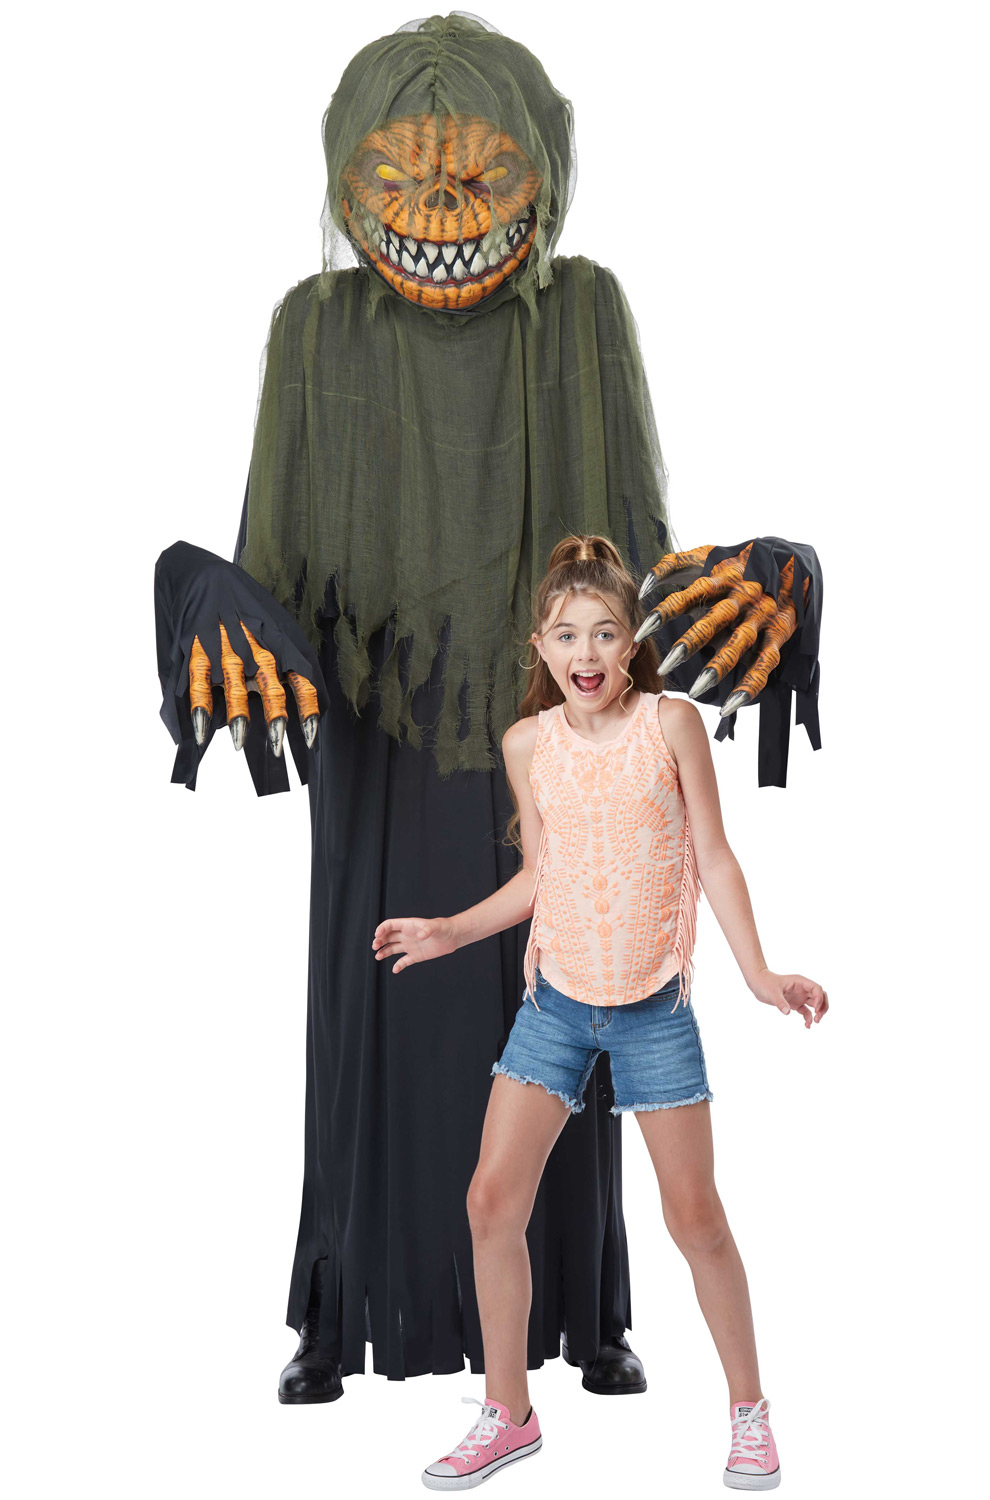 ... scary costumes scary halloween costumes purecostumes com; clearance ...  sc 1 st  The Halloween - aaasne & Clearance Kids Halloween Costumes - The Halloween